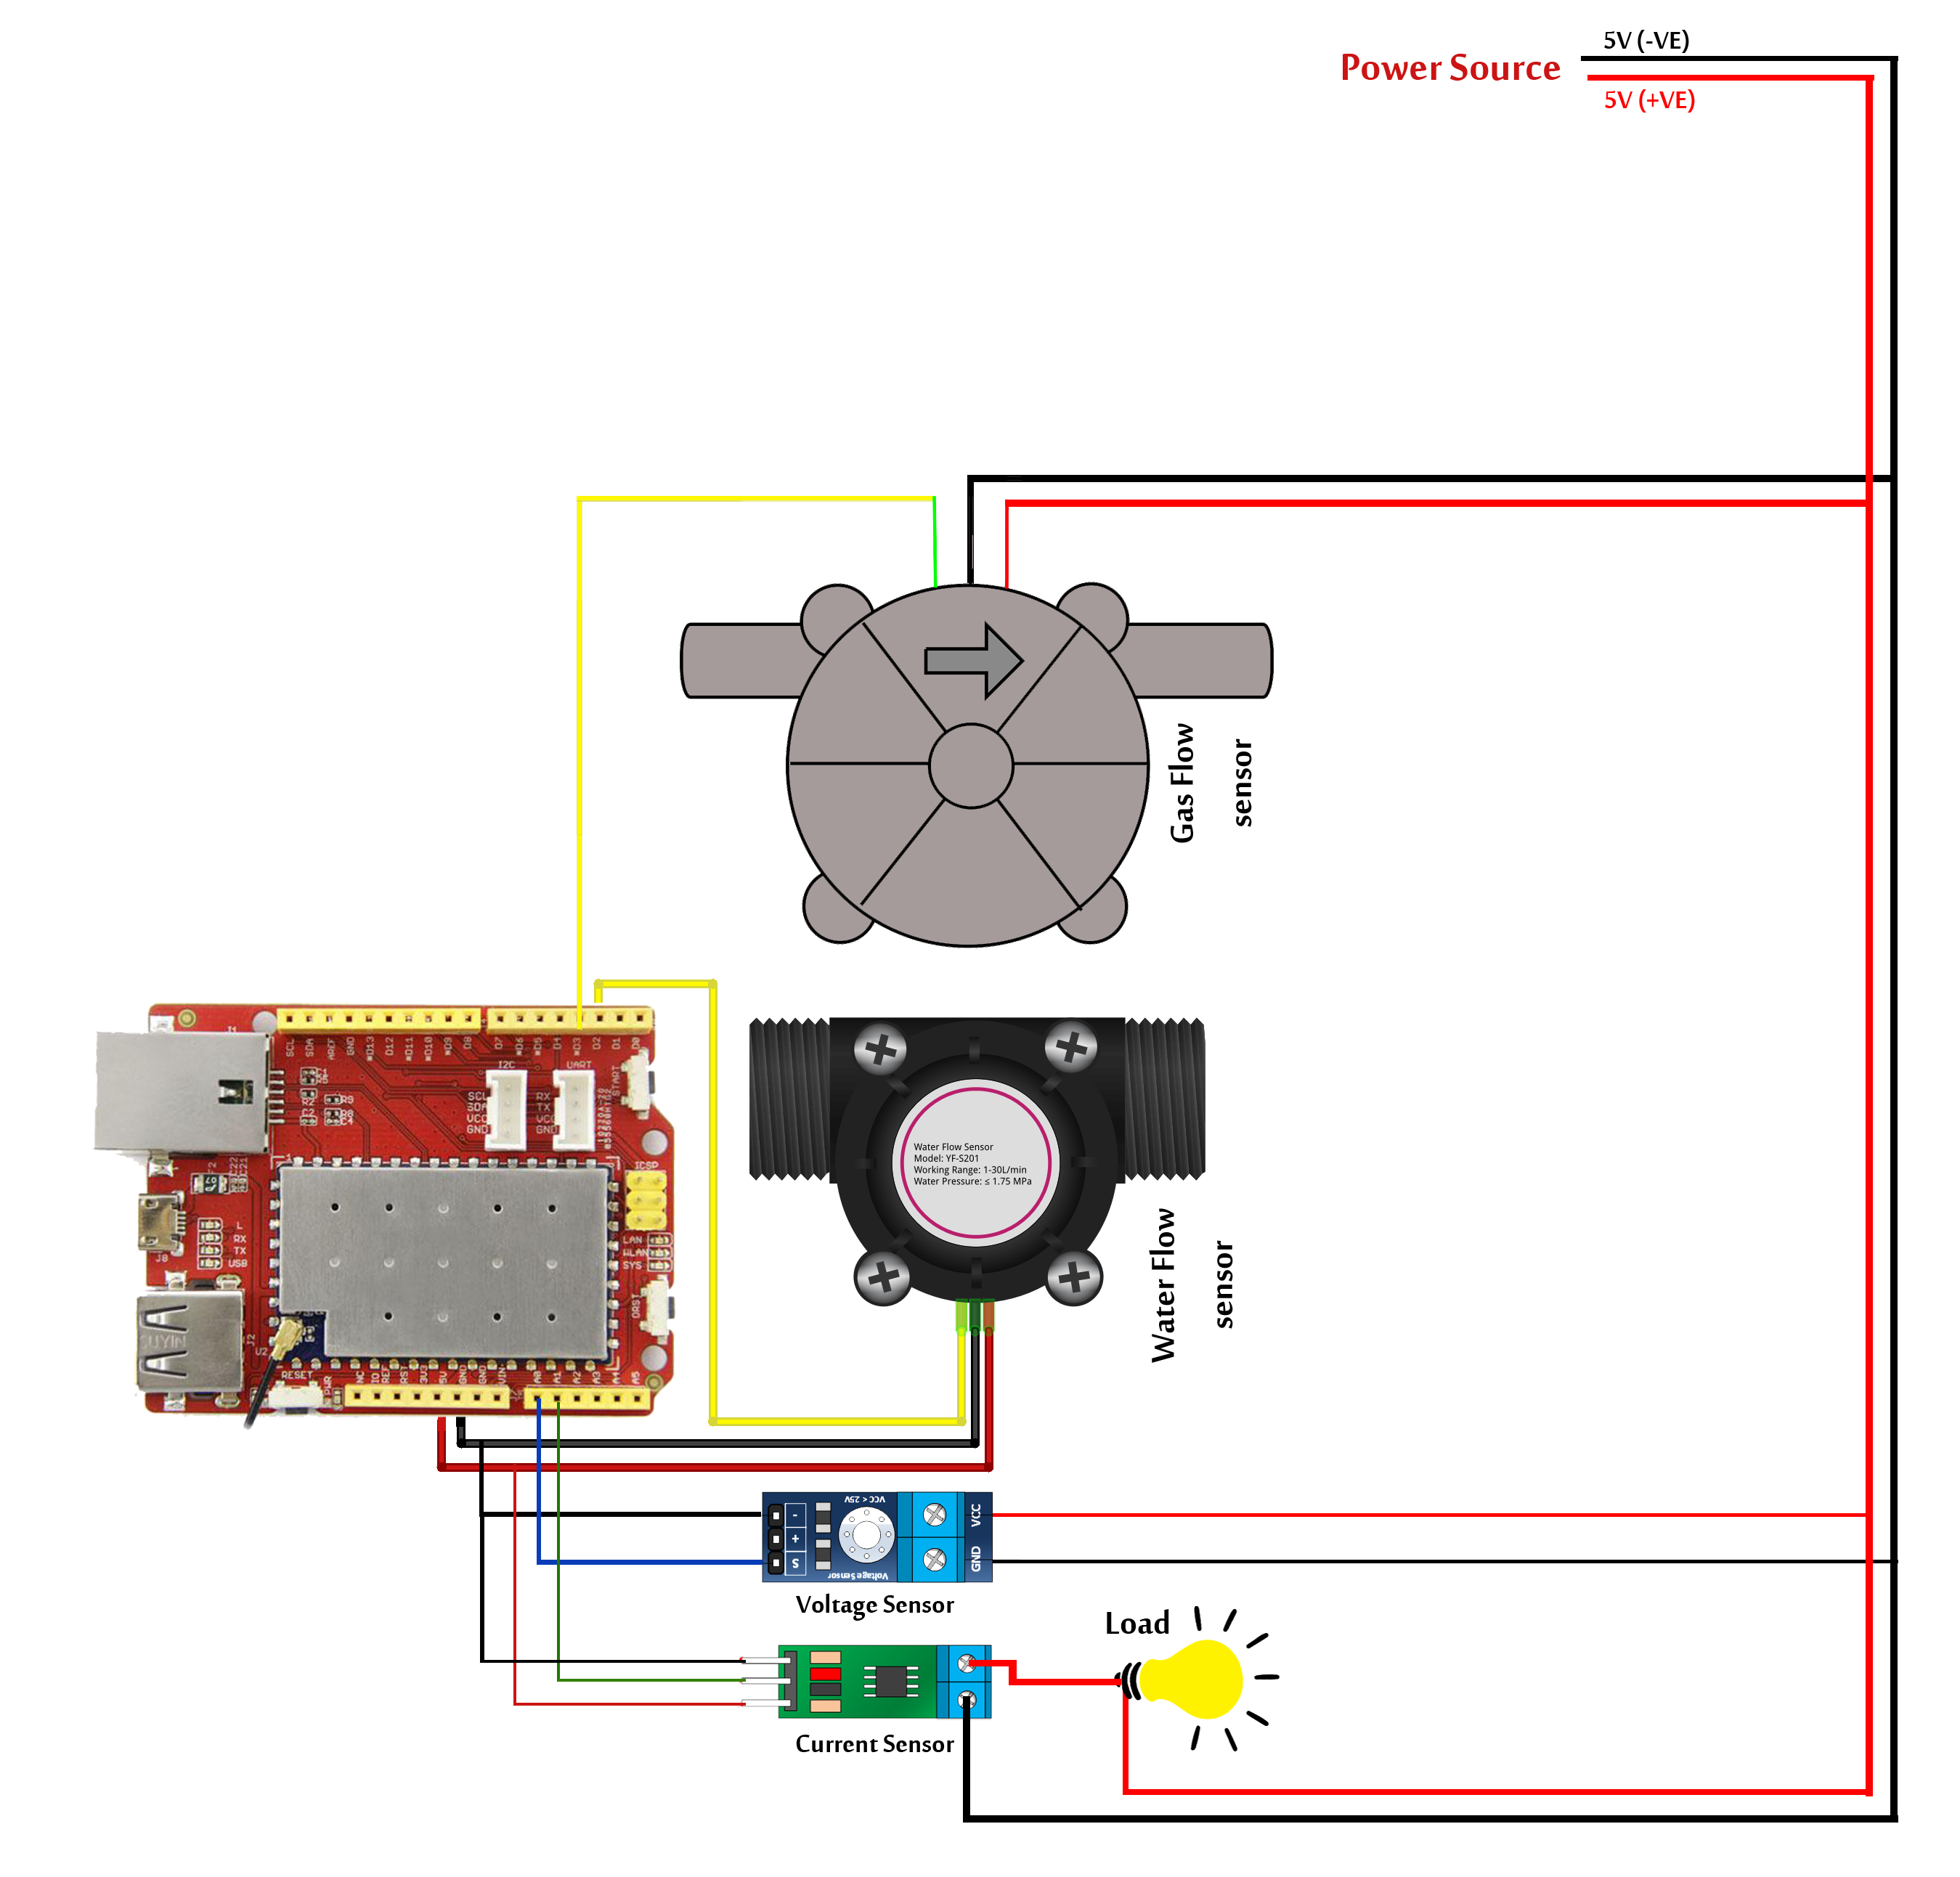 Utility Usages Monitoring System Based On Internet Of Things Currentsensorcircuitjpg Circuit Diagram Mzbubcluix